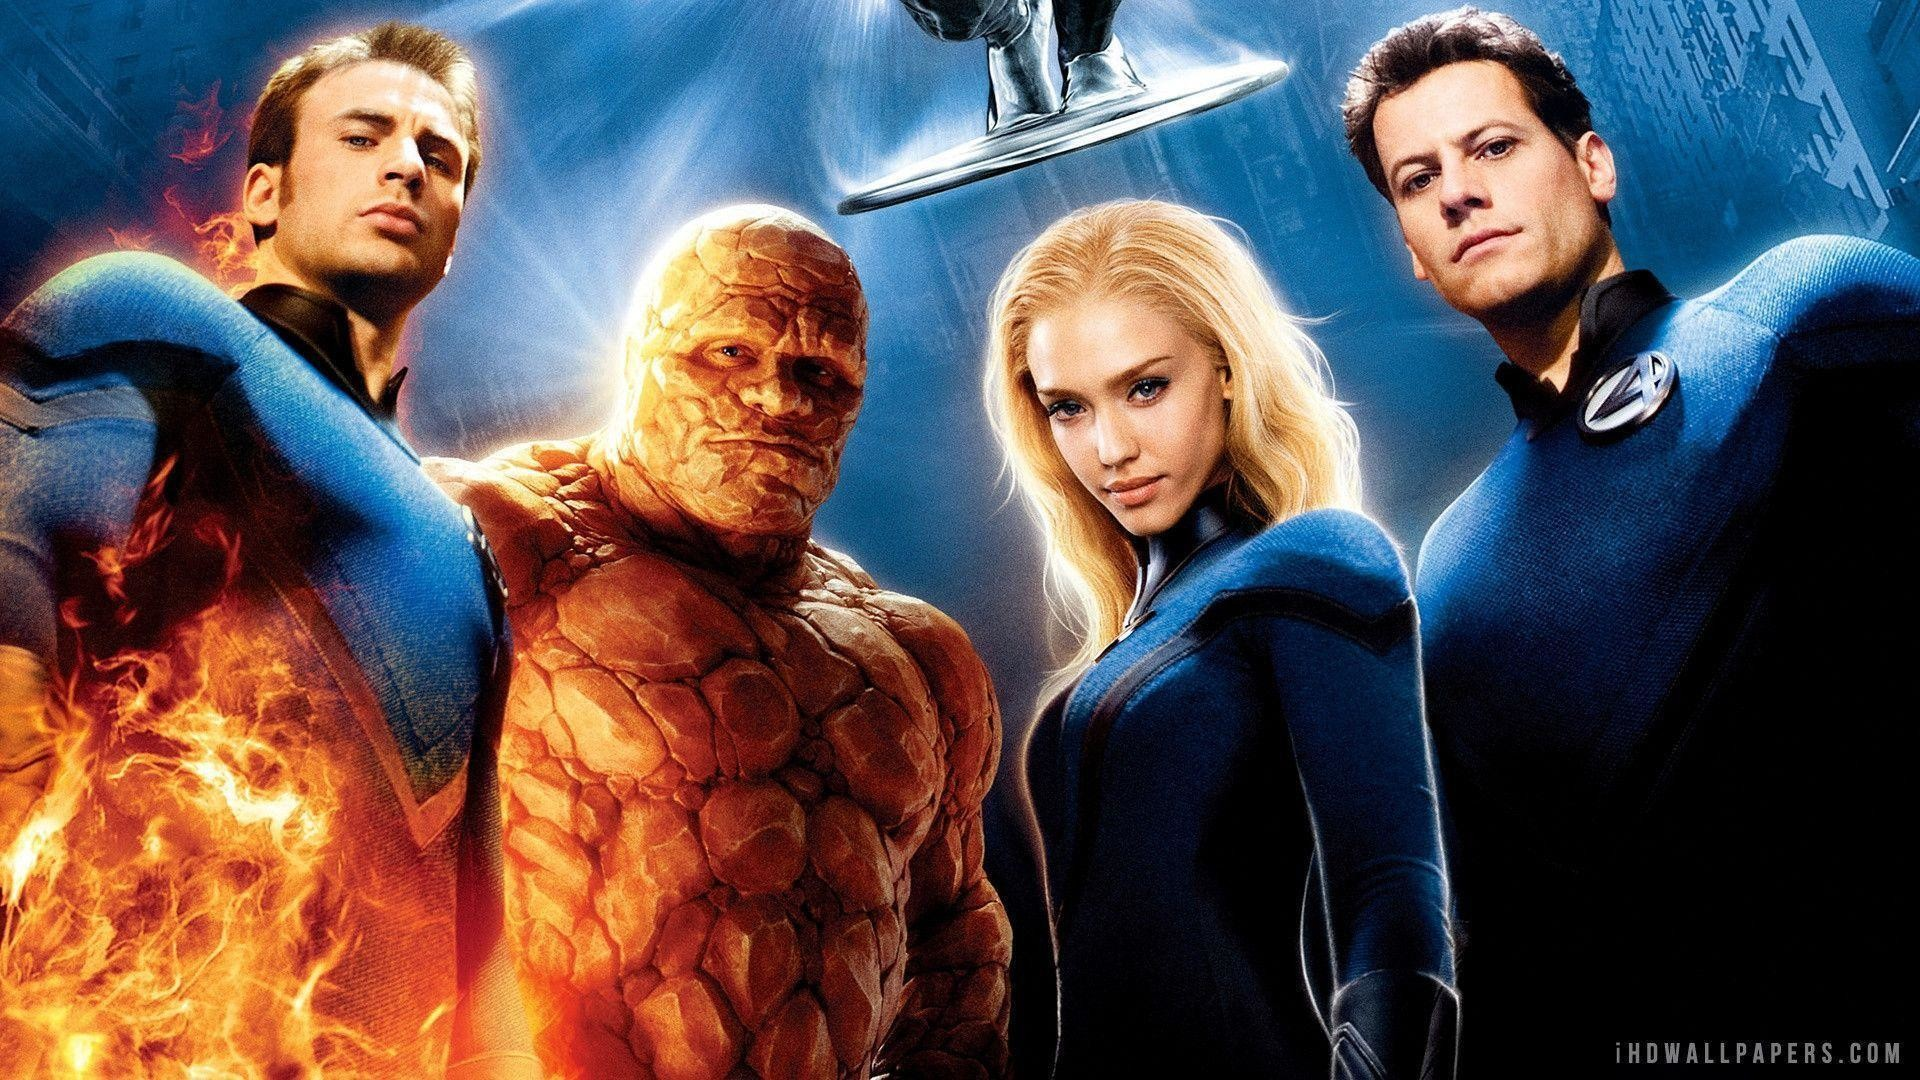 Fantastic 4 Rise of the Silver Surfer HD Wallpaper – iHD Wallpapers